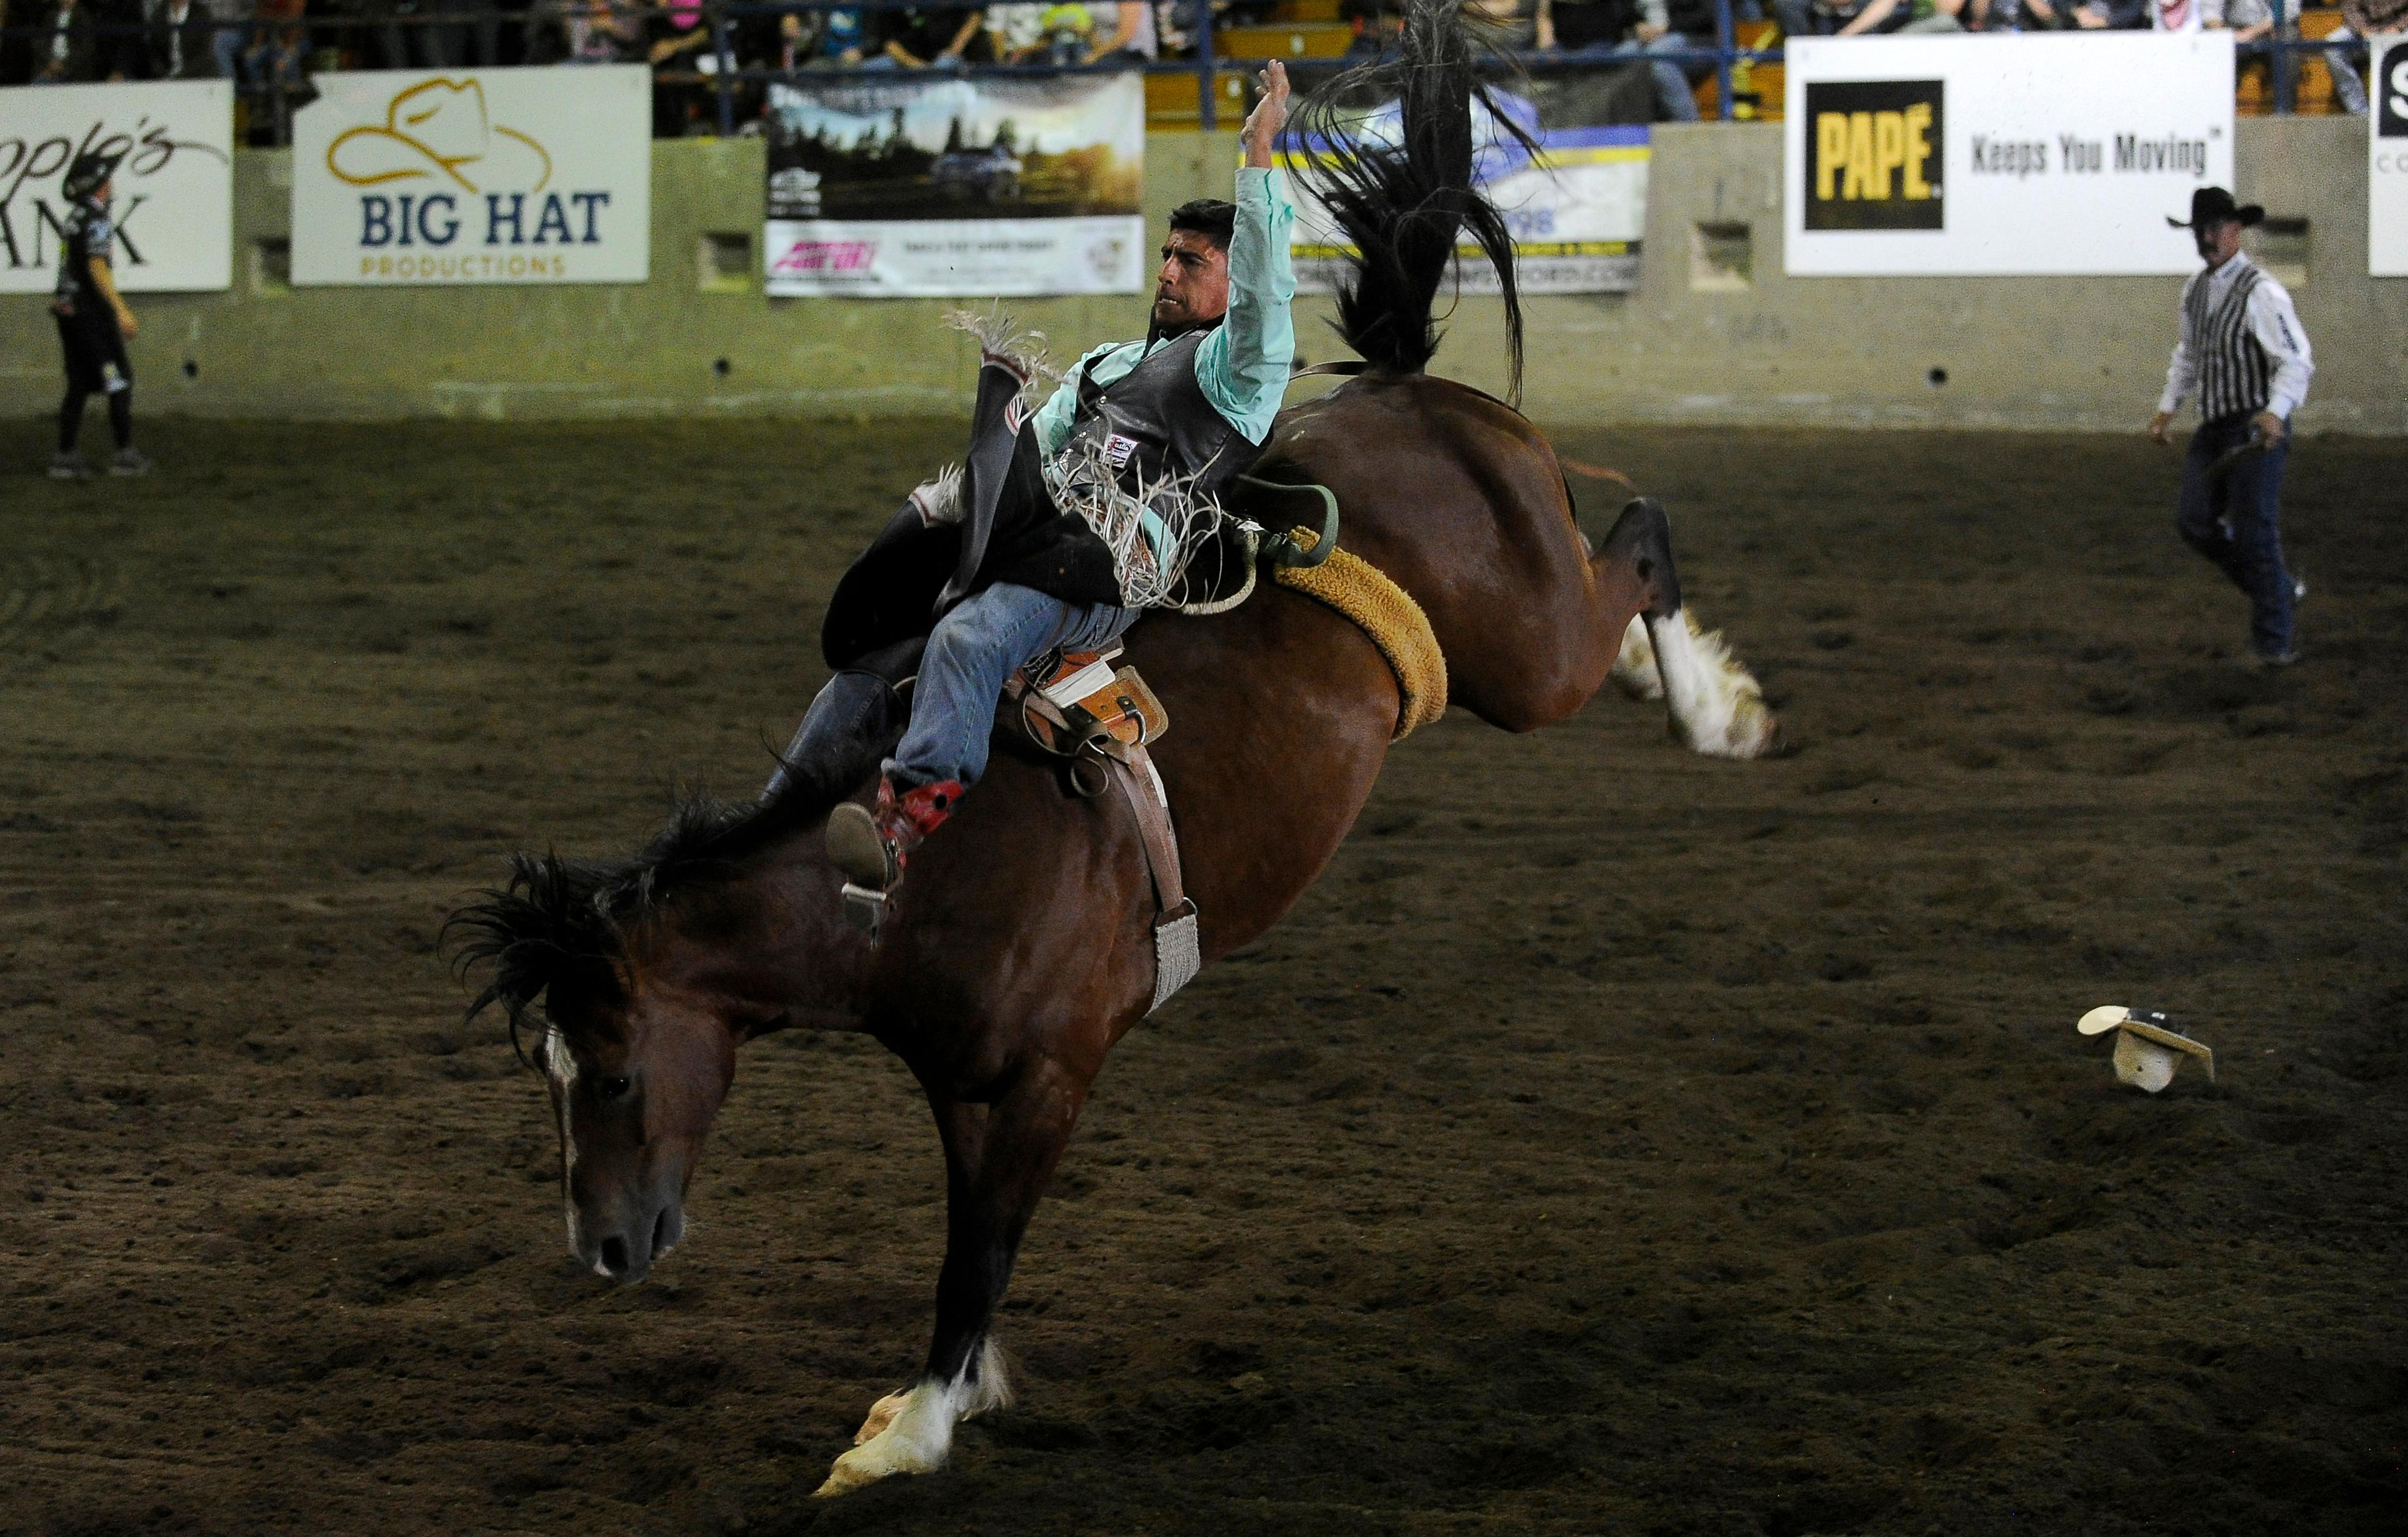 Andy Atkinson / Mail TribuneClay Ramone from Bluffdale, Utah, takes his turn competing in bareback riding at the Jackson County Expo Thursday evening.